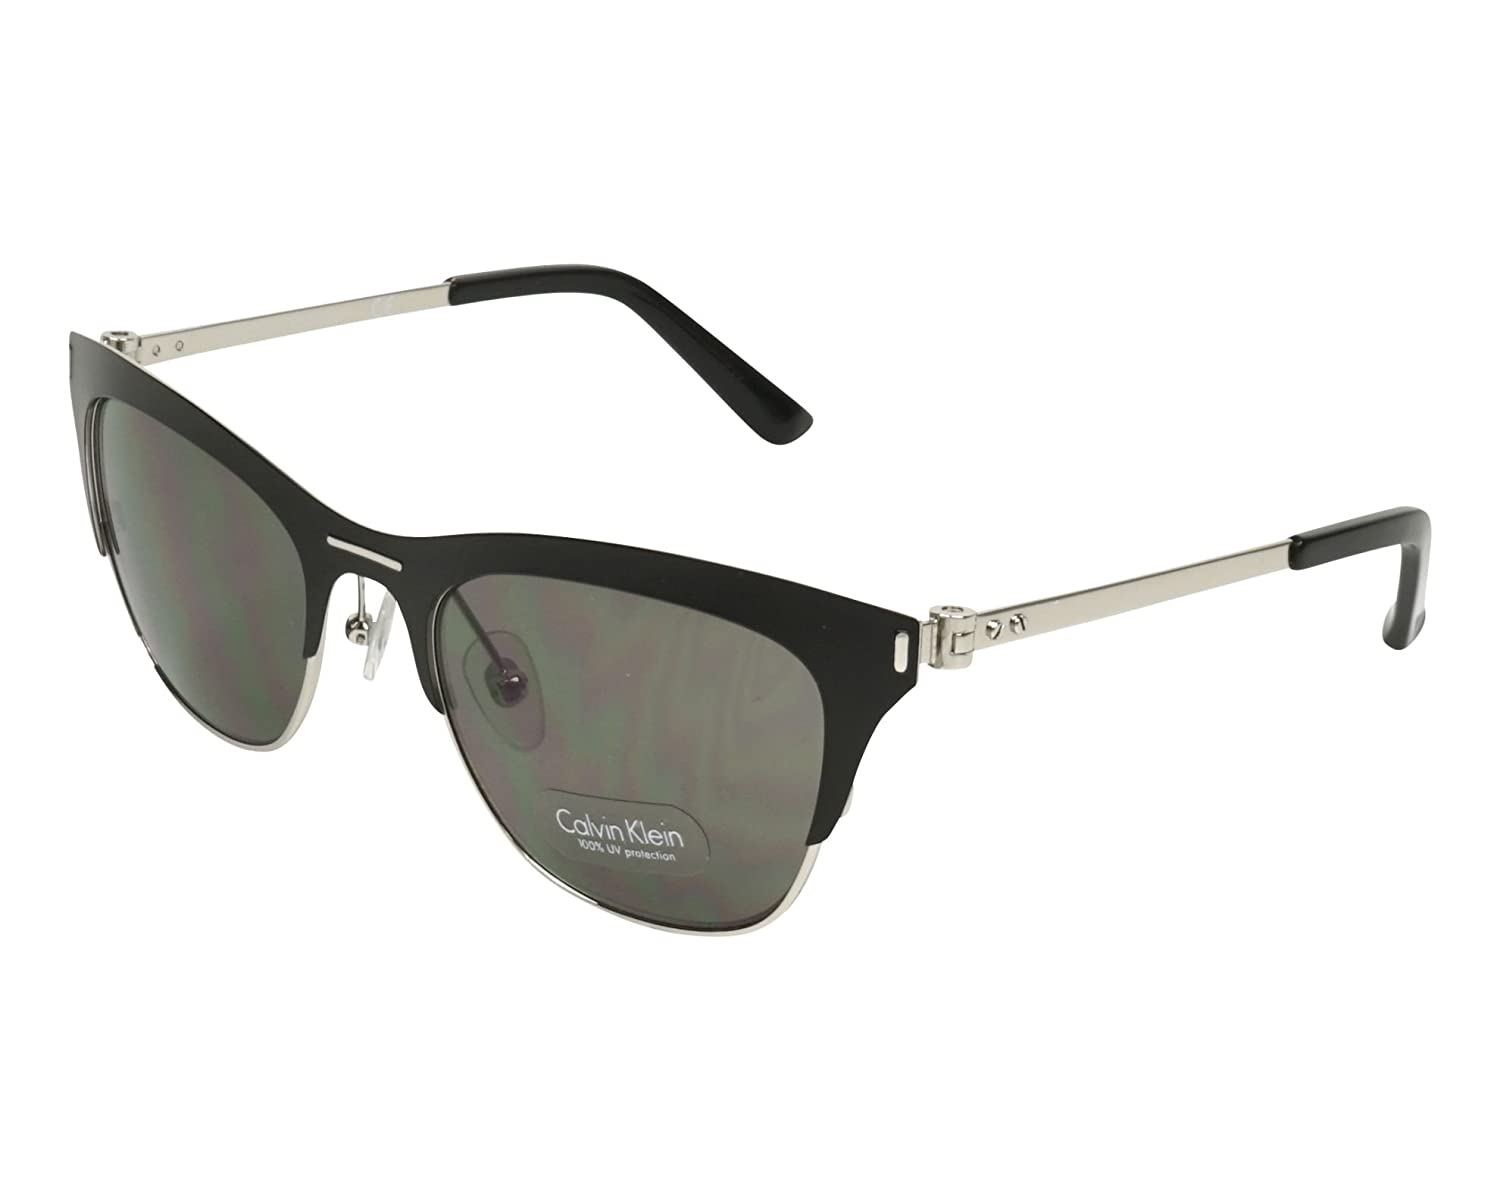 e1d47151a9b2 Calvin Klein CK8005S 29259 Black Cat Eye Sunglasses at Amazon Men's  Clothing store: